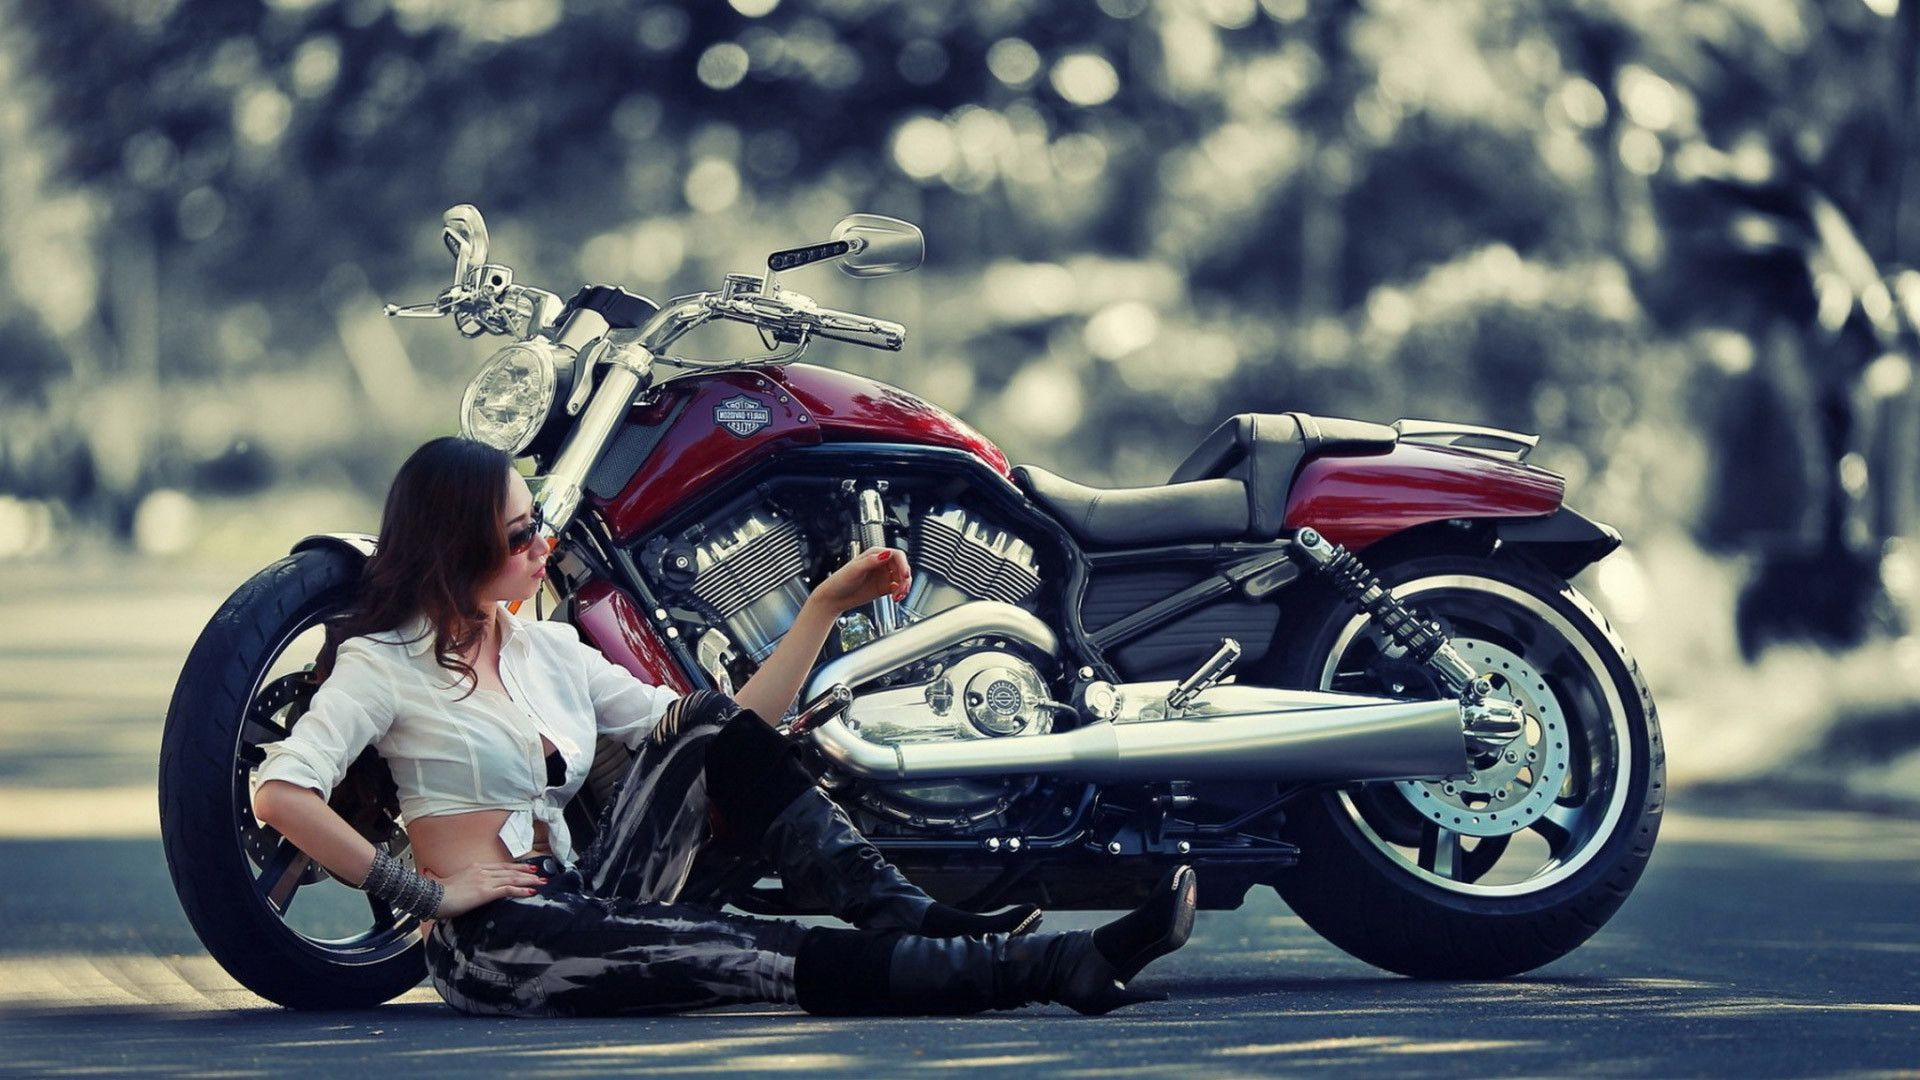 Res: 1920x1080, HD Bike Mobile Wallpapers - http://www.mobilewallpapers.us/hd-bike-mobile- wallpapers-2/